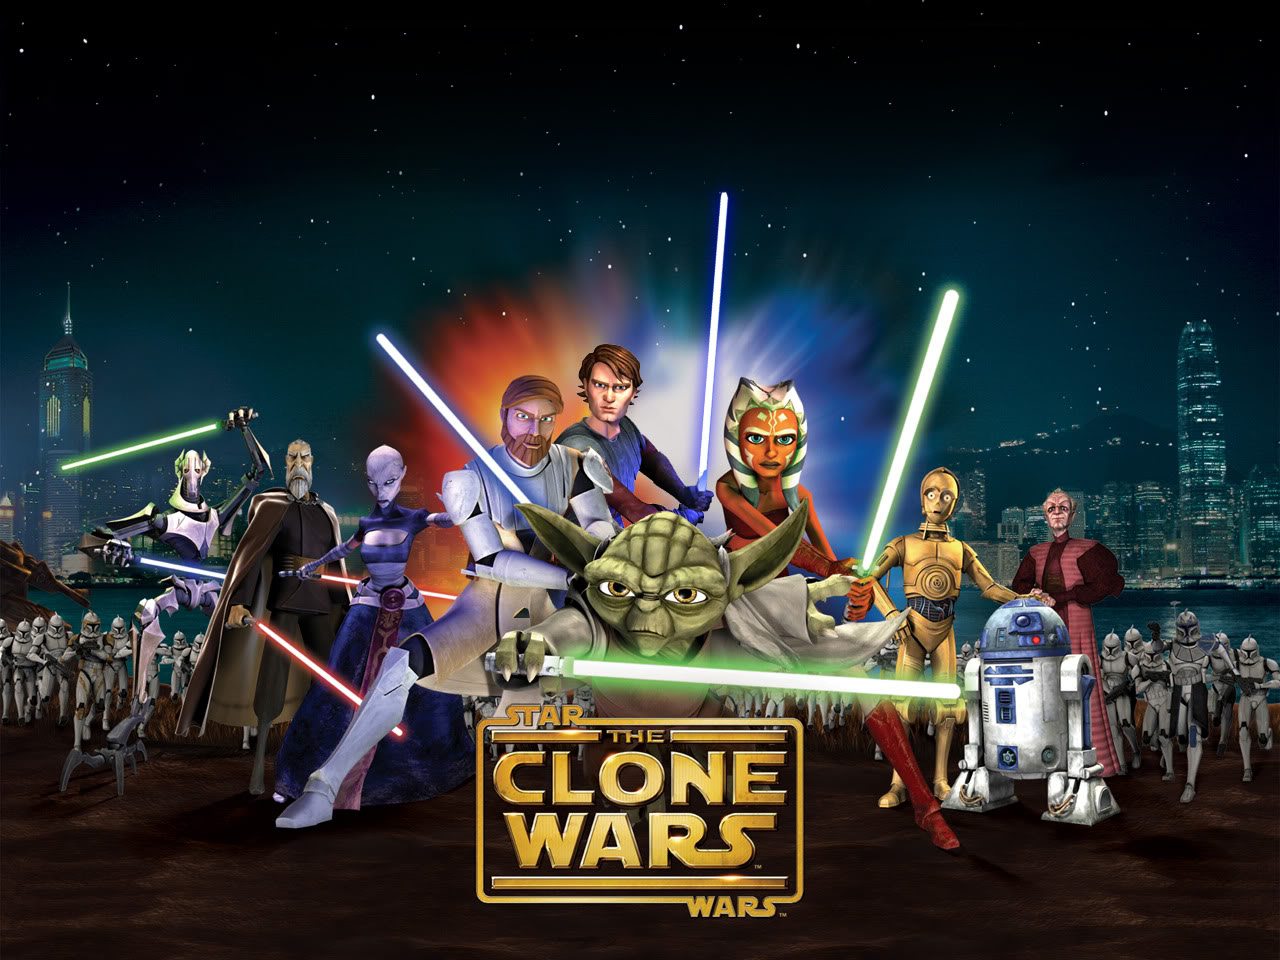 Cartoon Network Starwars Kolon Savaşları Oyunları